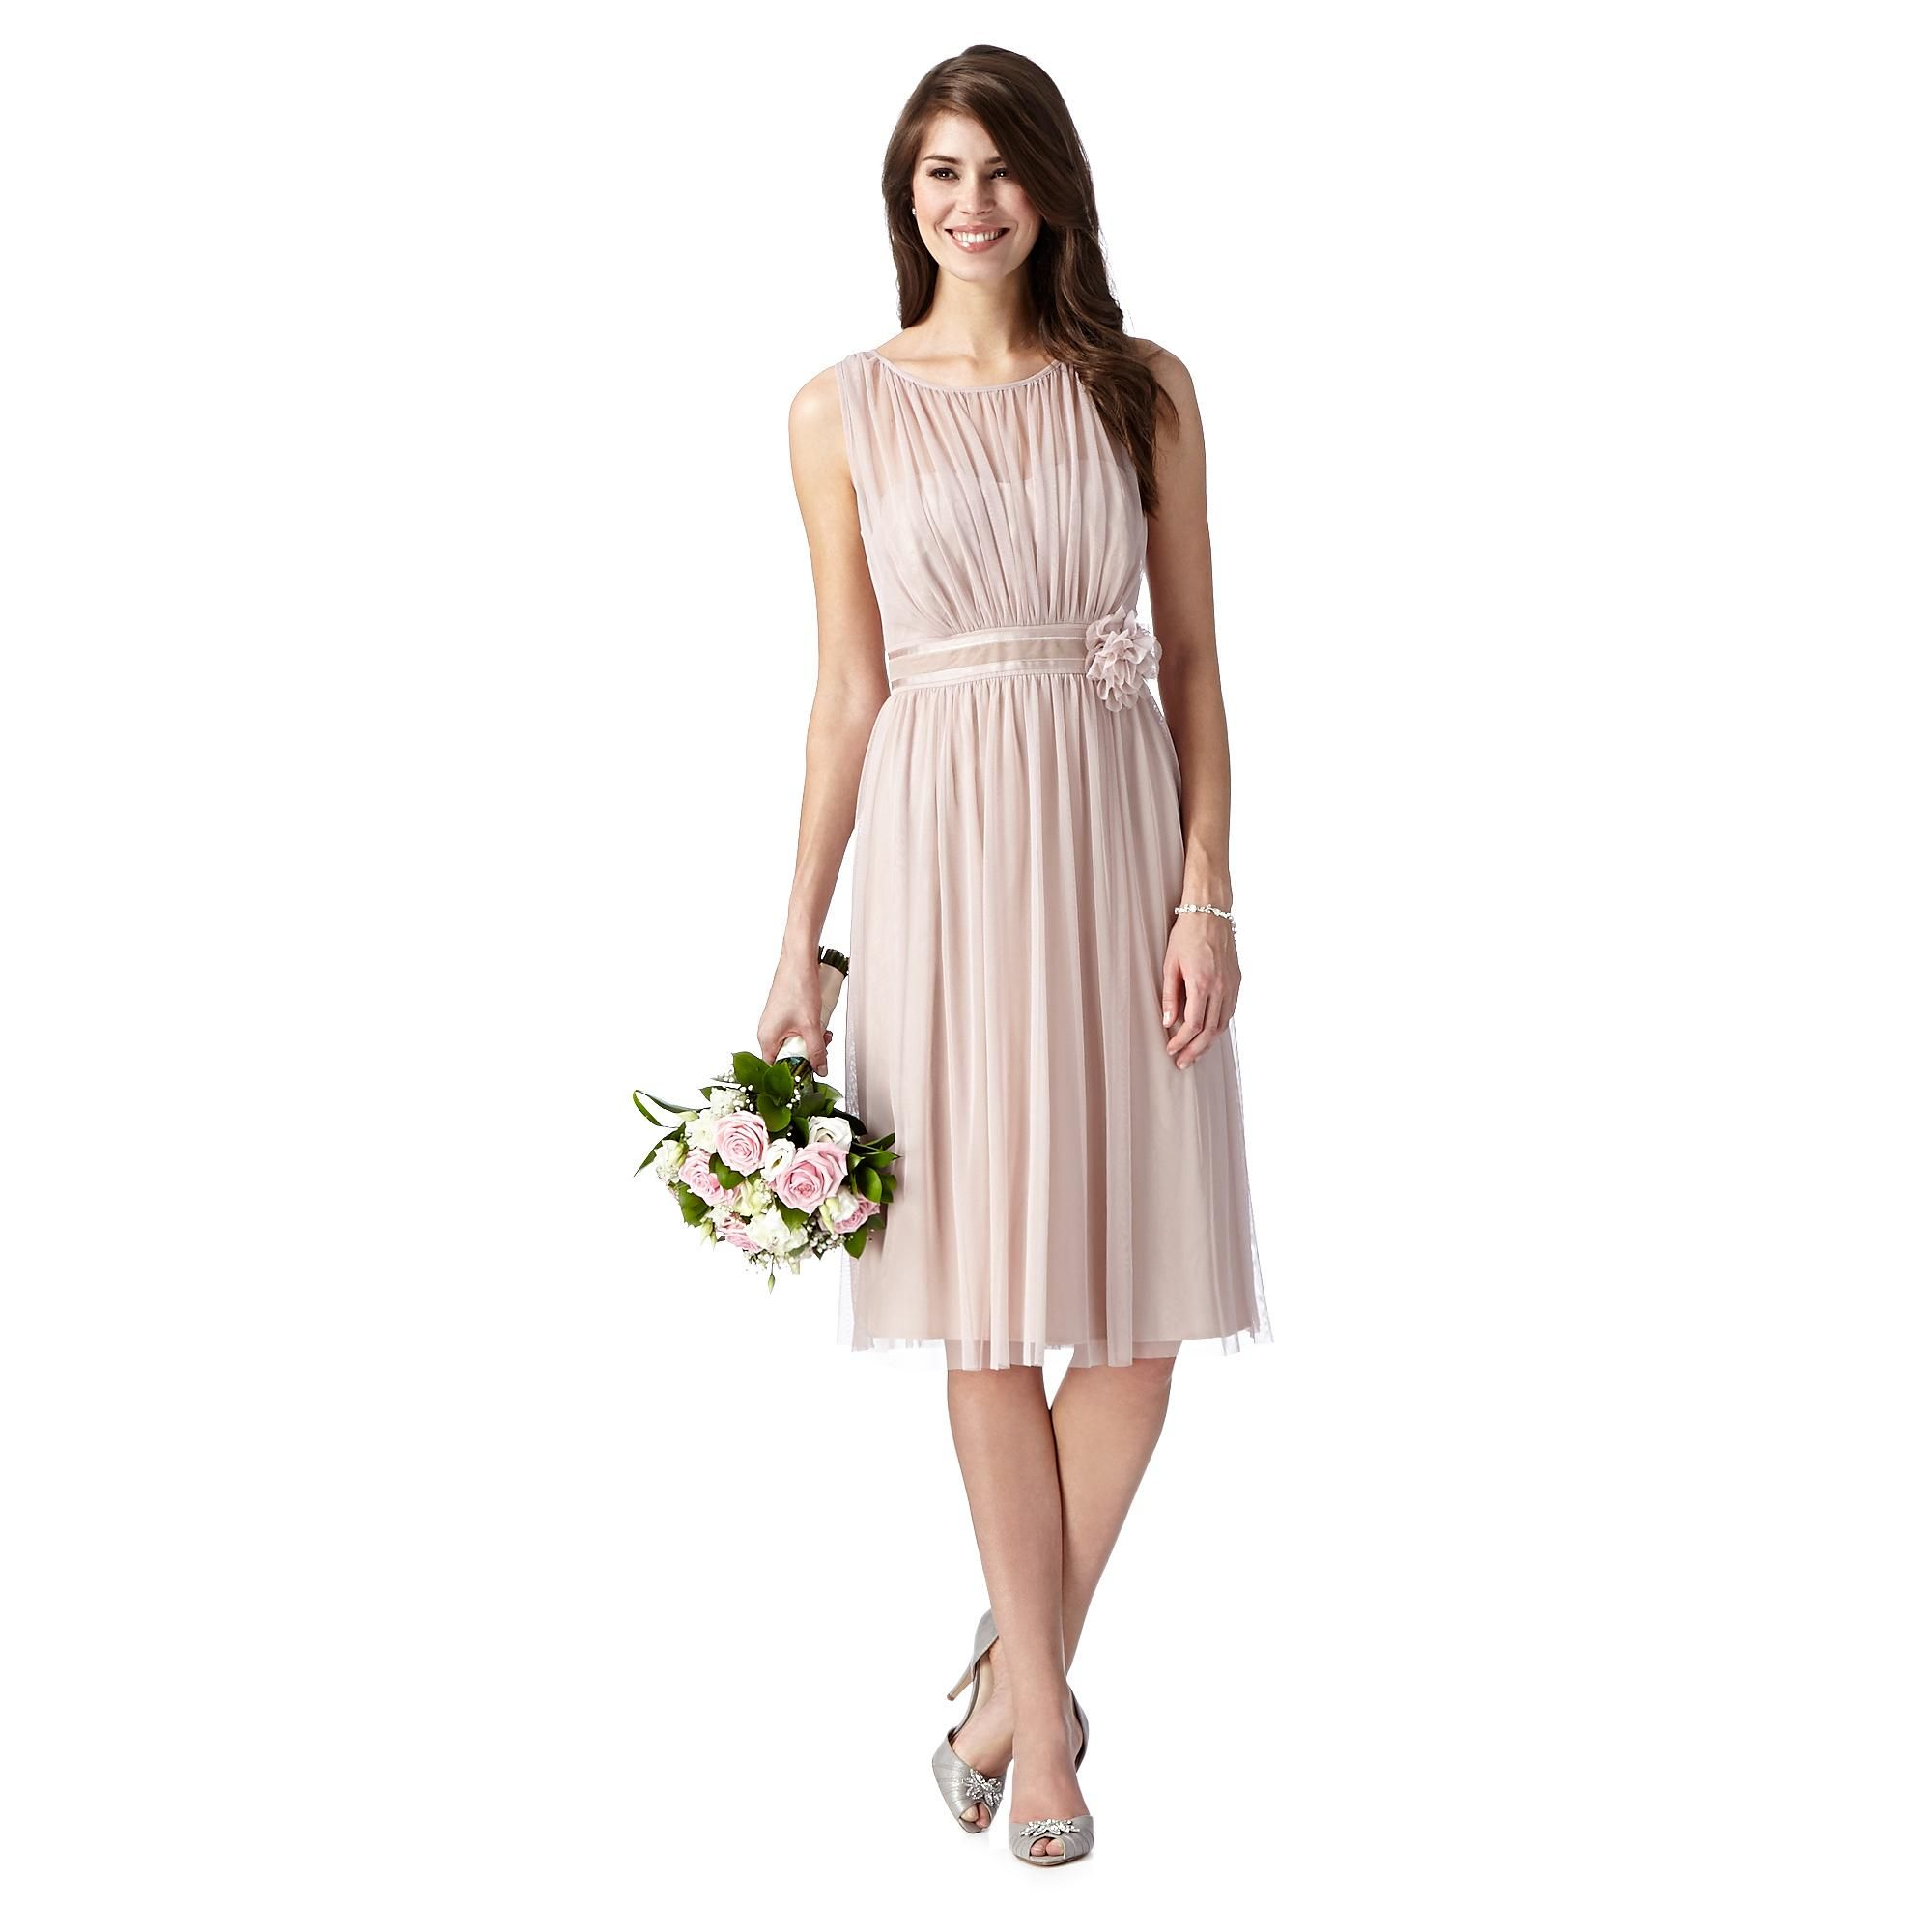 Rose mesh corsage dress bridesmaid dresses debenhams rose mesh corsage dress bridesmaid dresses debenhams ombrellifo Image collections